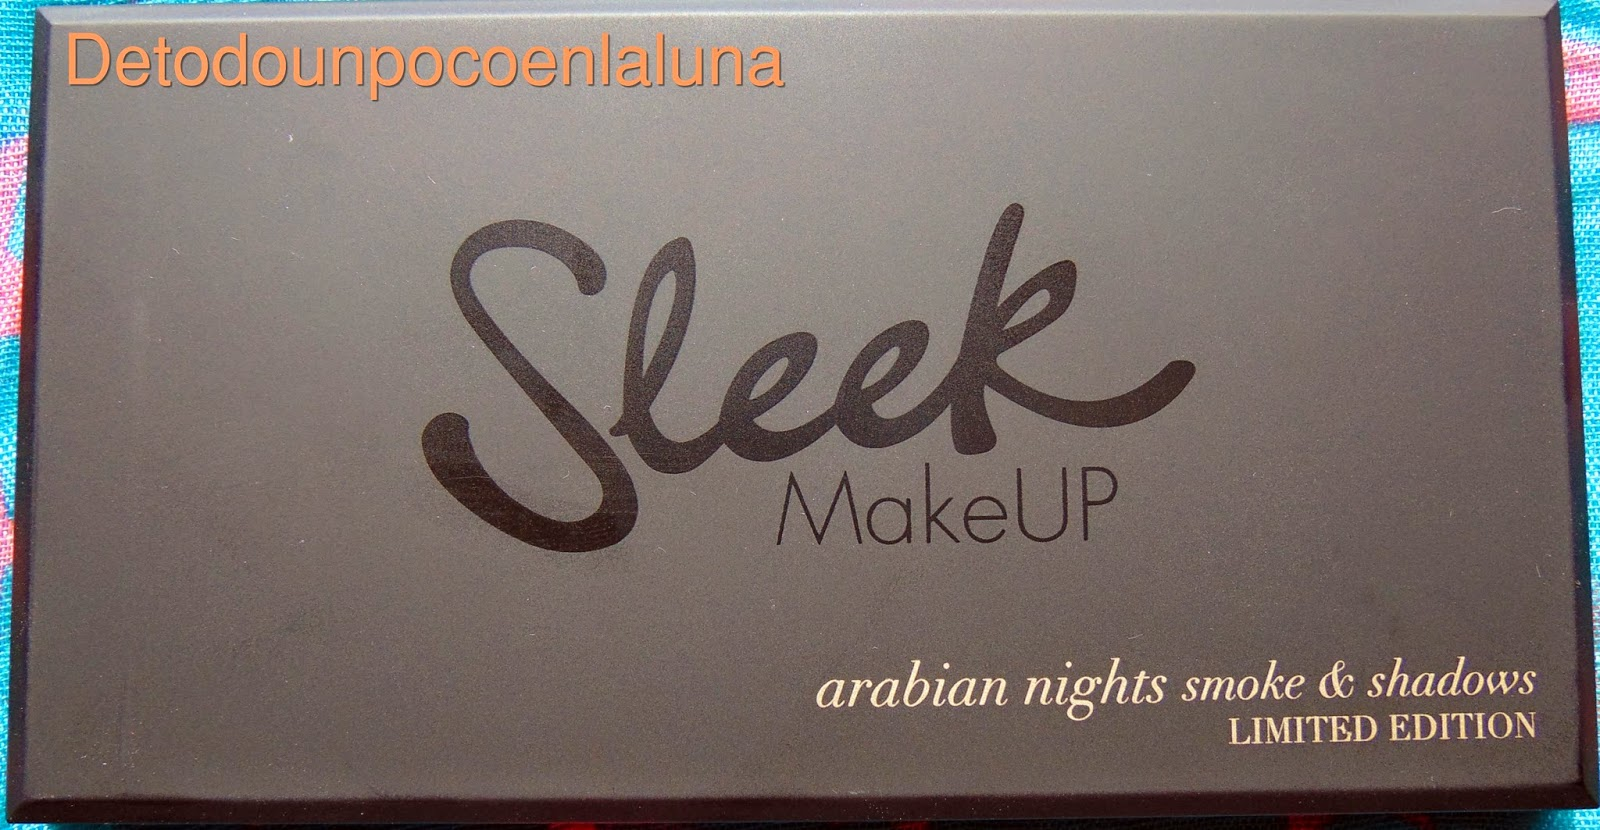 Paleta Arabian Nights de sleek